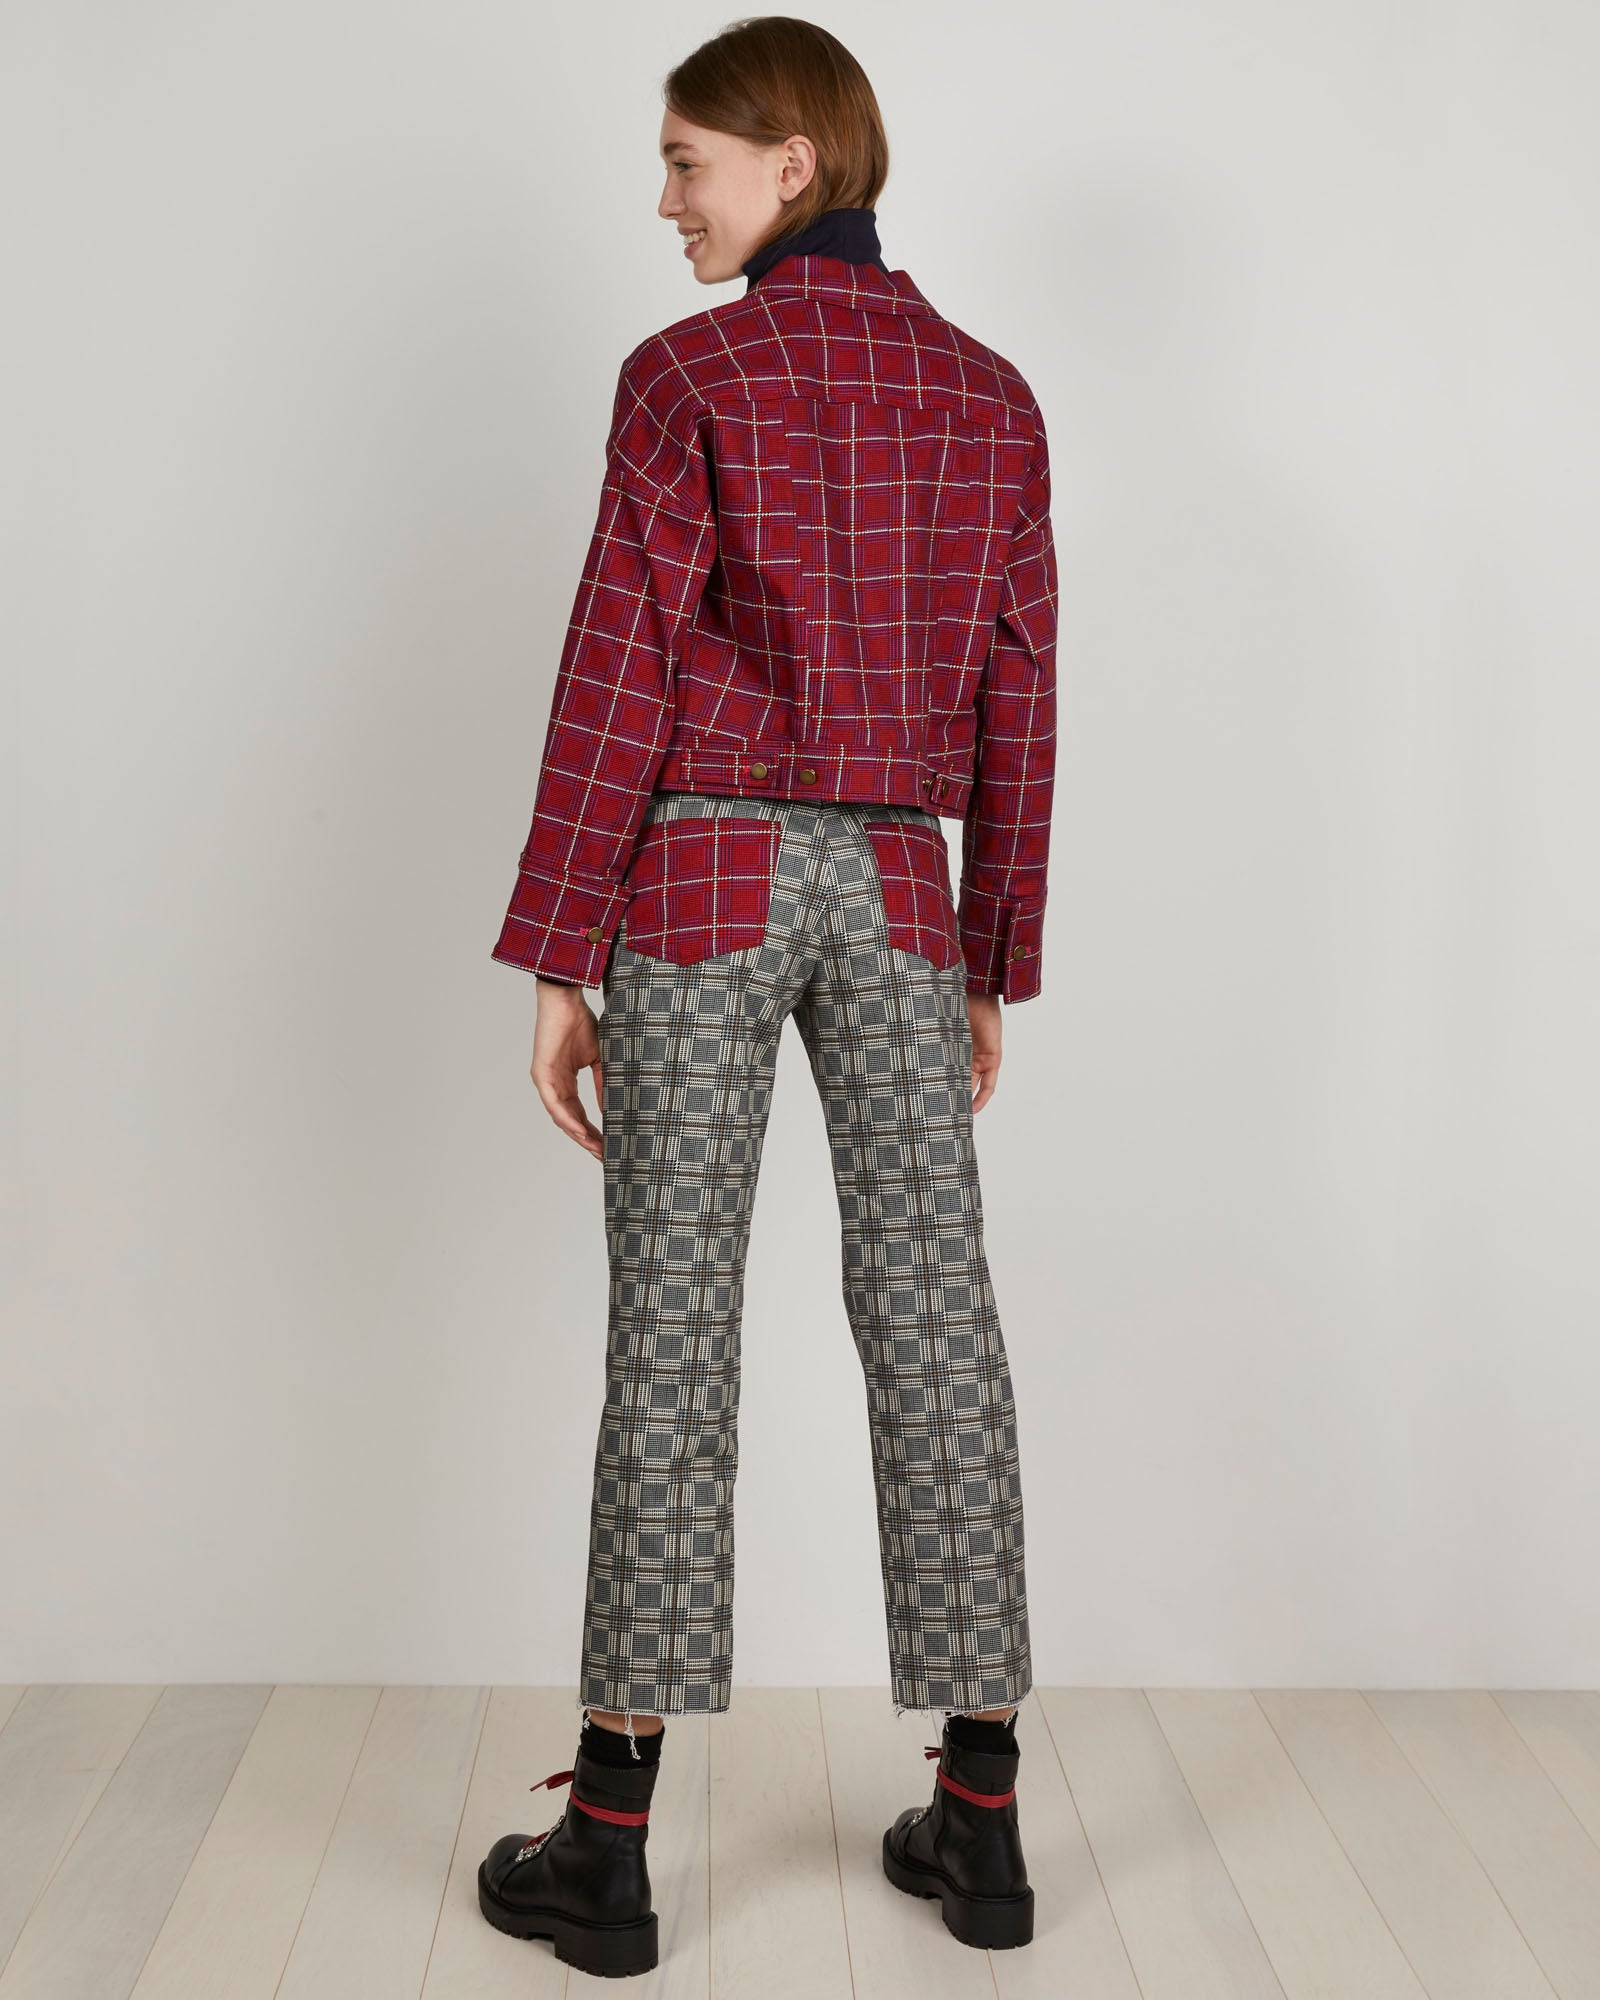 THE KIT's printed red plaid Jean denim Jacket has a slouchy fit and dropped shoulder. Styles great with high-waisted skirt or used a layering piece.